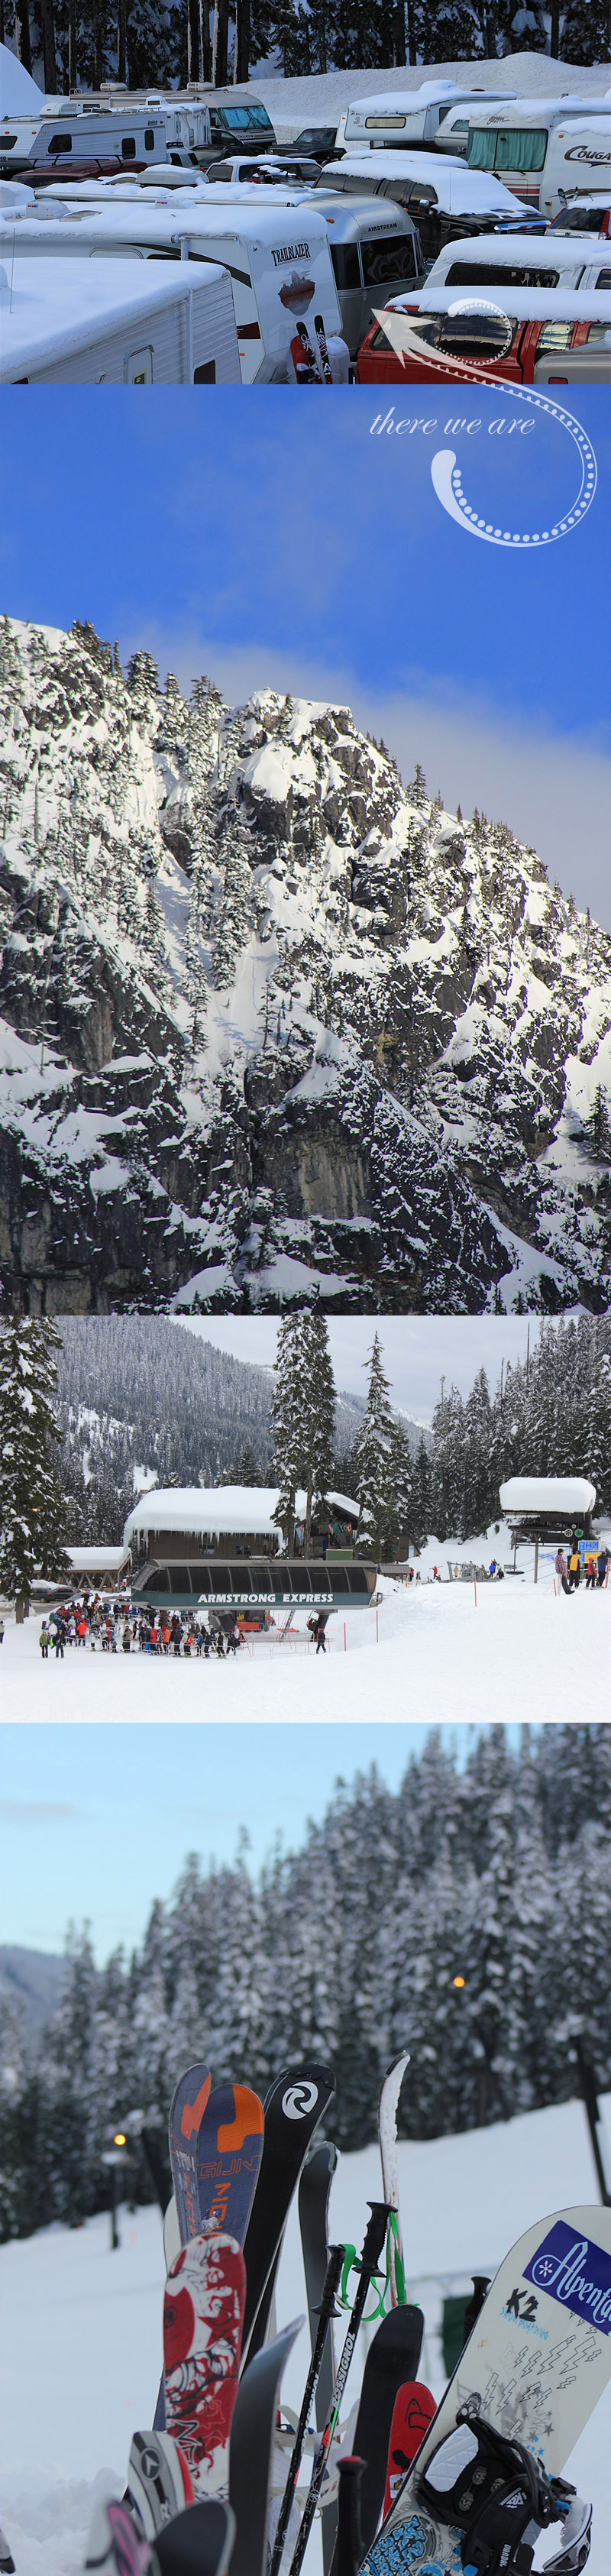 Summit at Snoqualmie and Skiing at Alpental, WA State